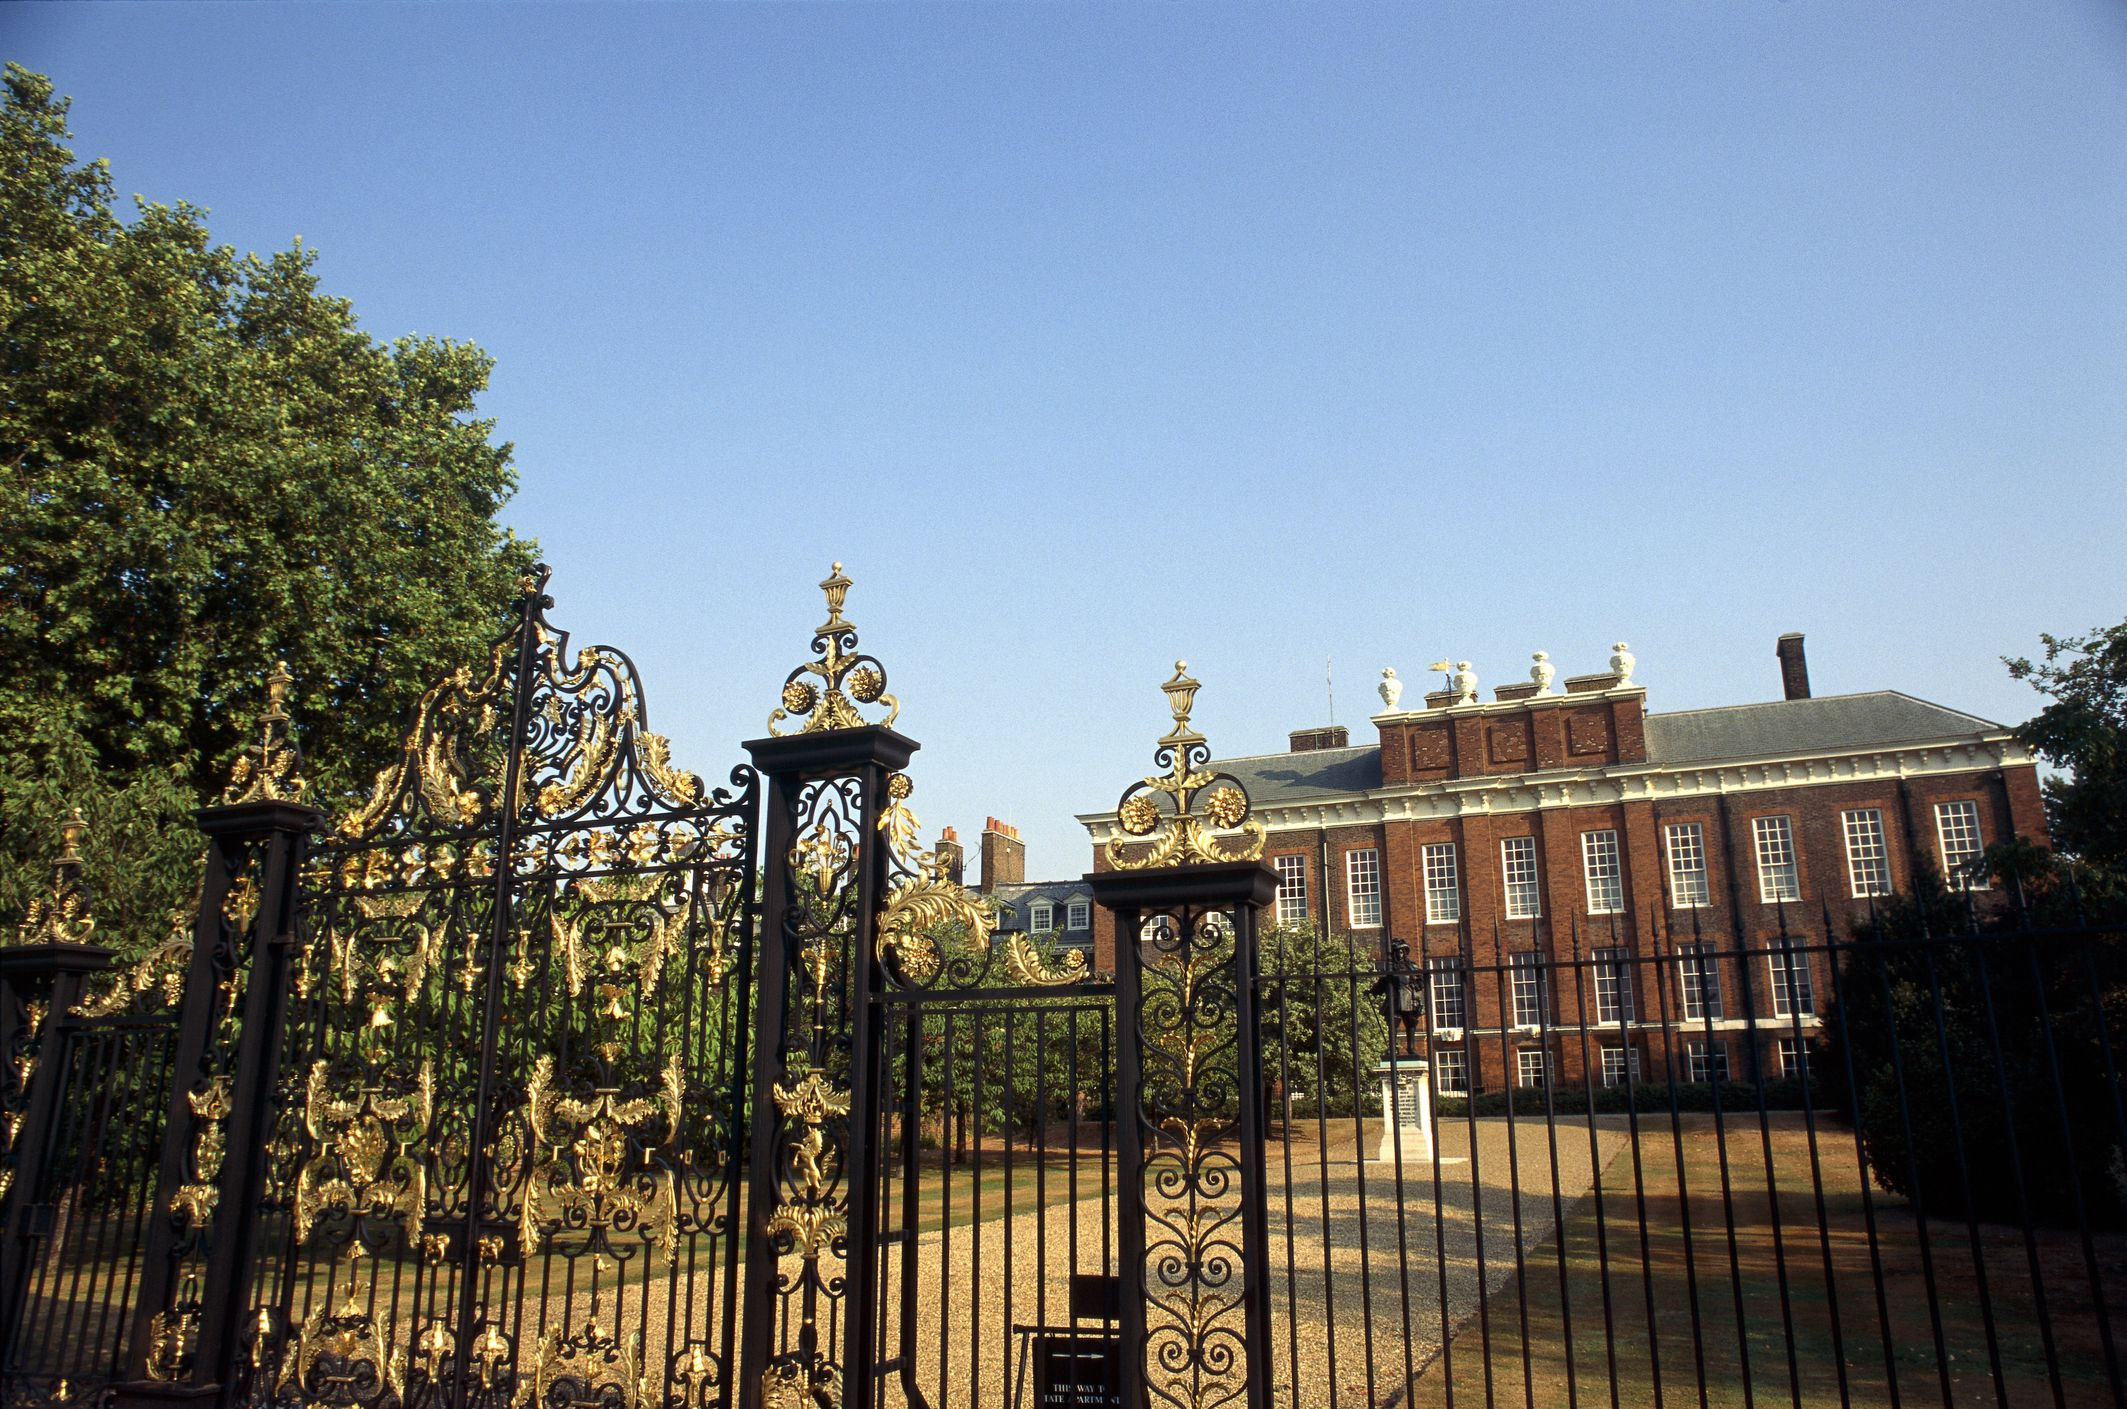 London's must-visit royal palaces